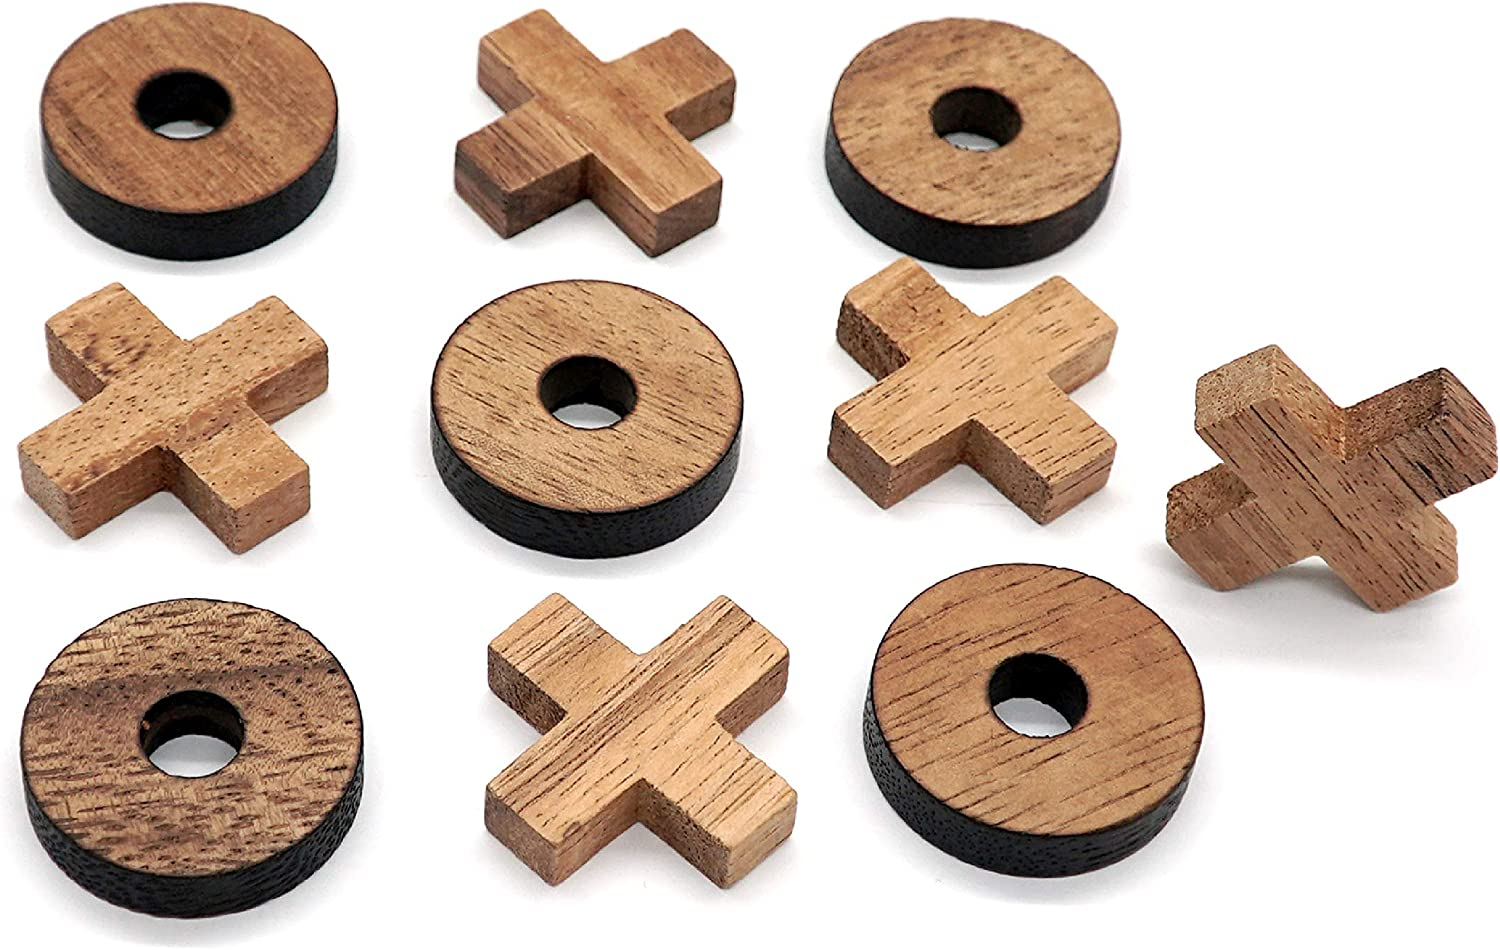 Tic Tac Toe Wood Coffee Tables Family Games to Play and a Classic Game Home Decor for Living Room Rustic Table Decor and Use as Game Top Wood Guest Room Decor only OX Piece